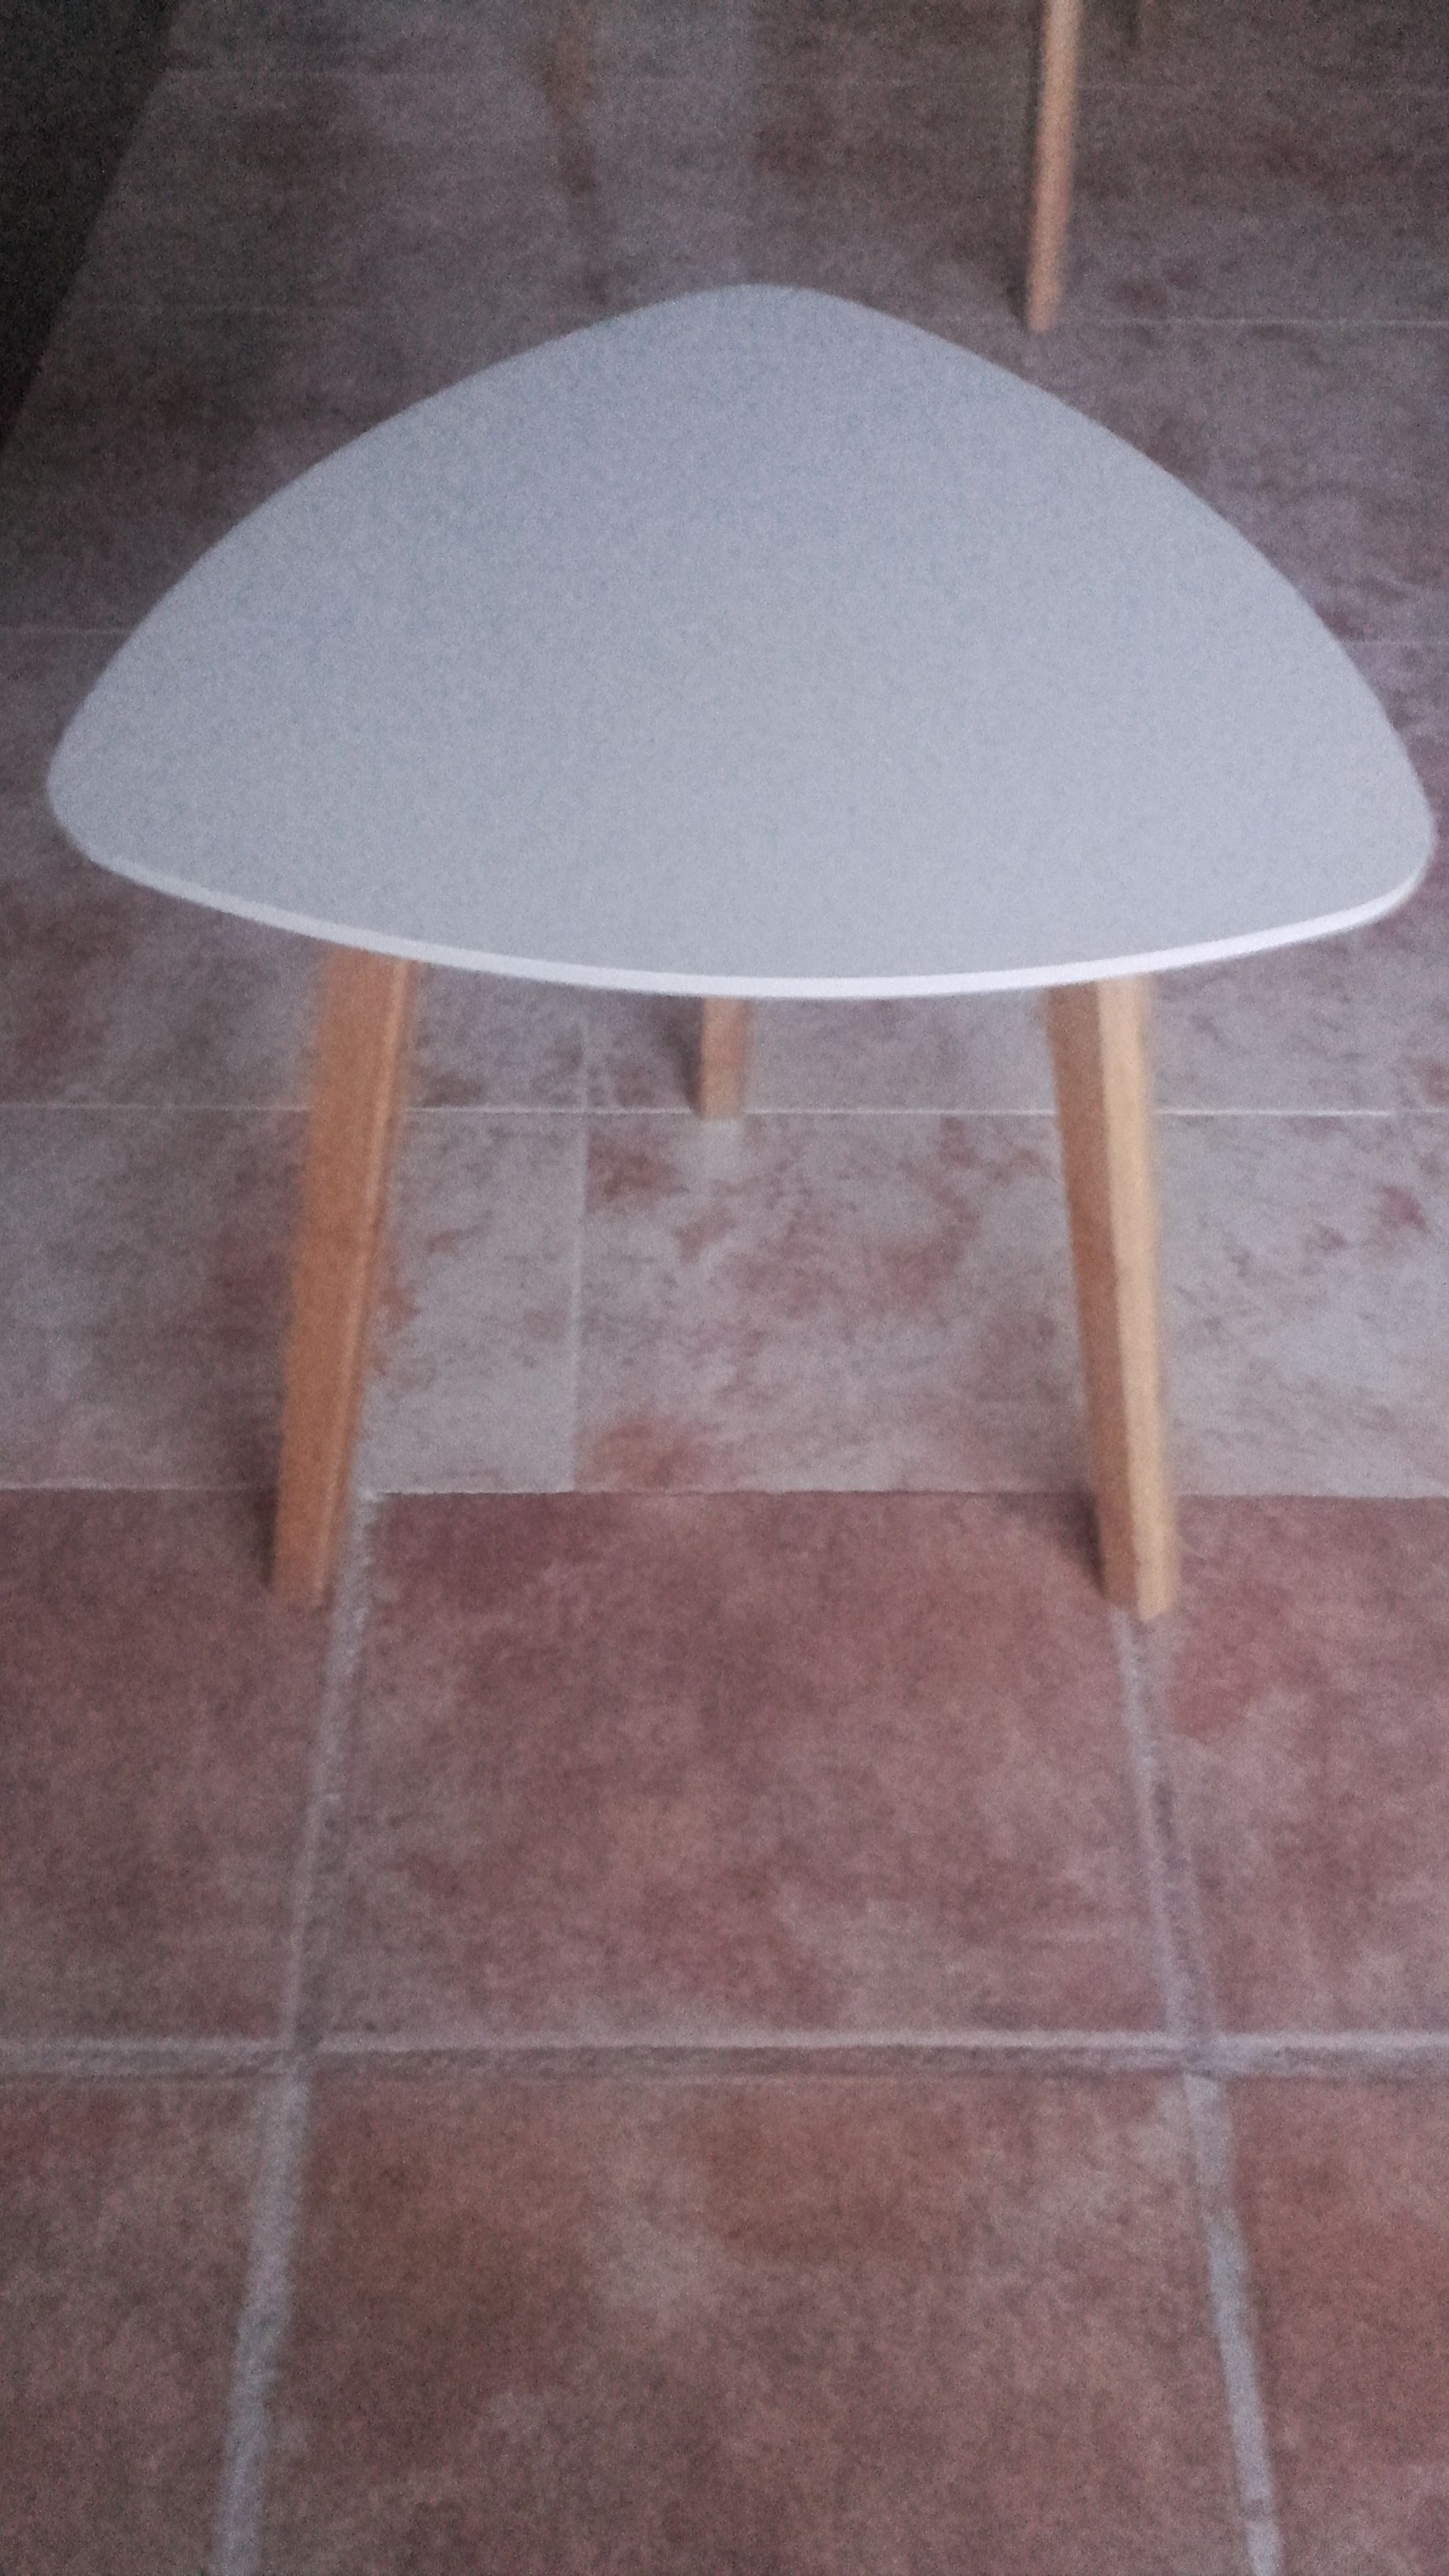 For sale: Small White Table - Buy and sell items in Playa